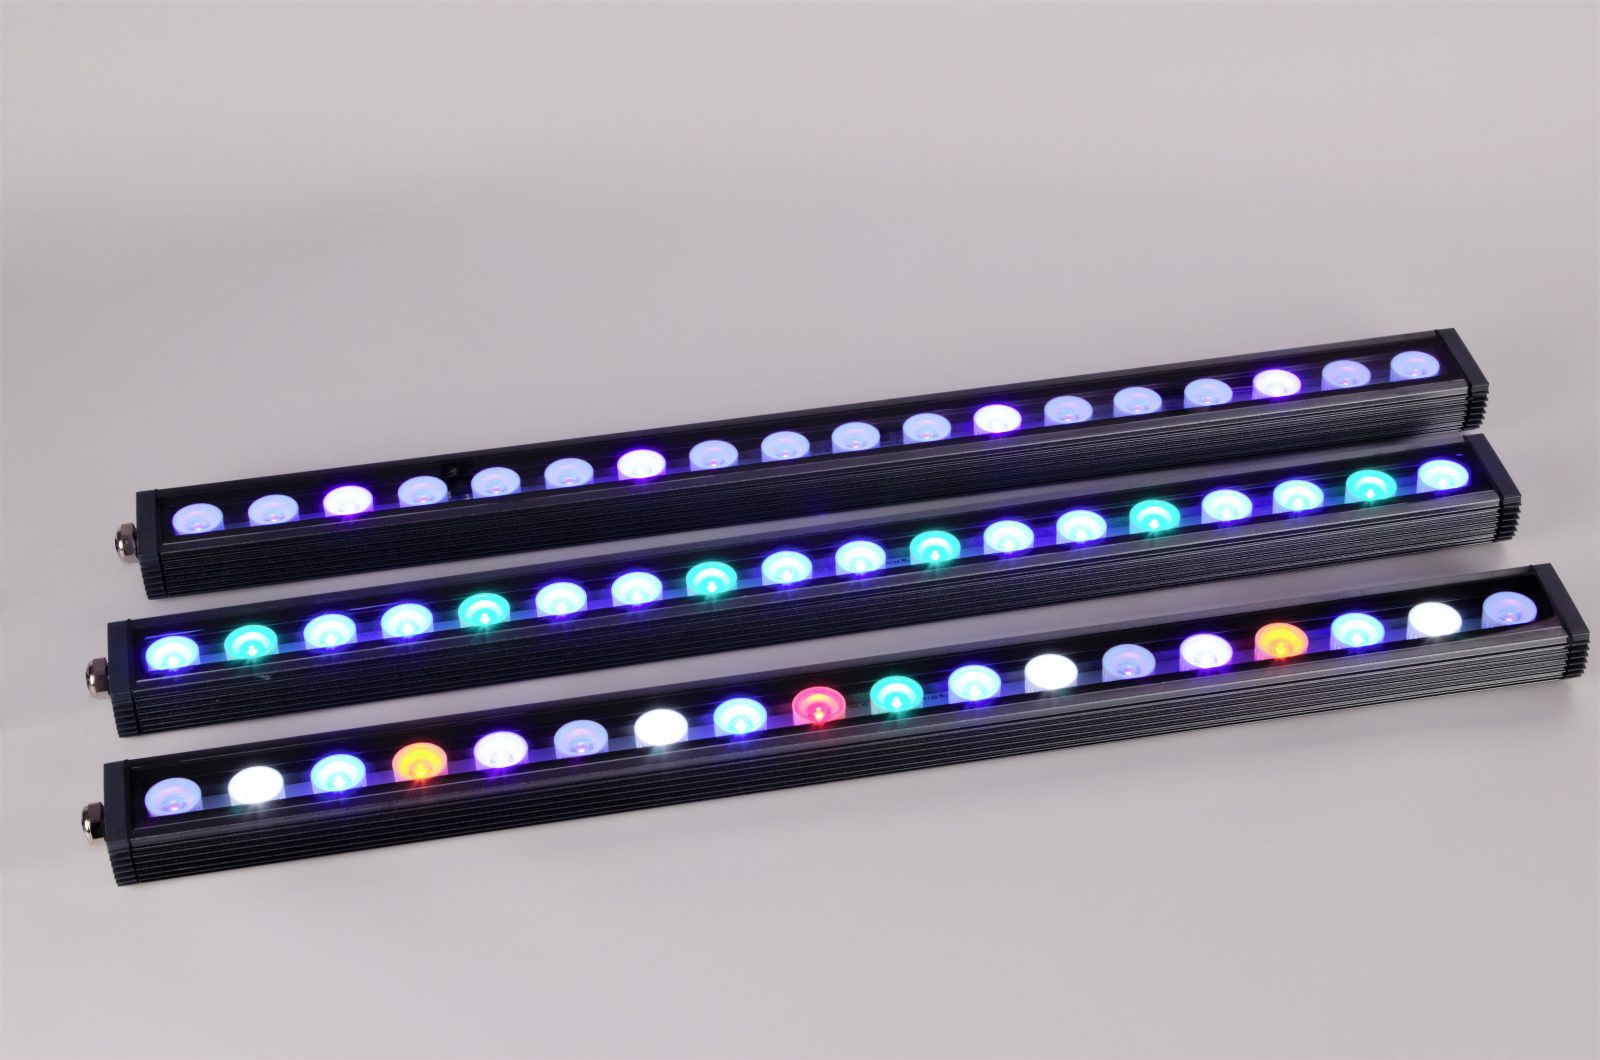 LED BAR 24 inci LED Orphek ATAU 60